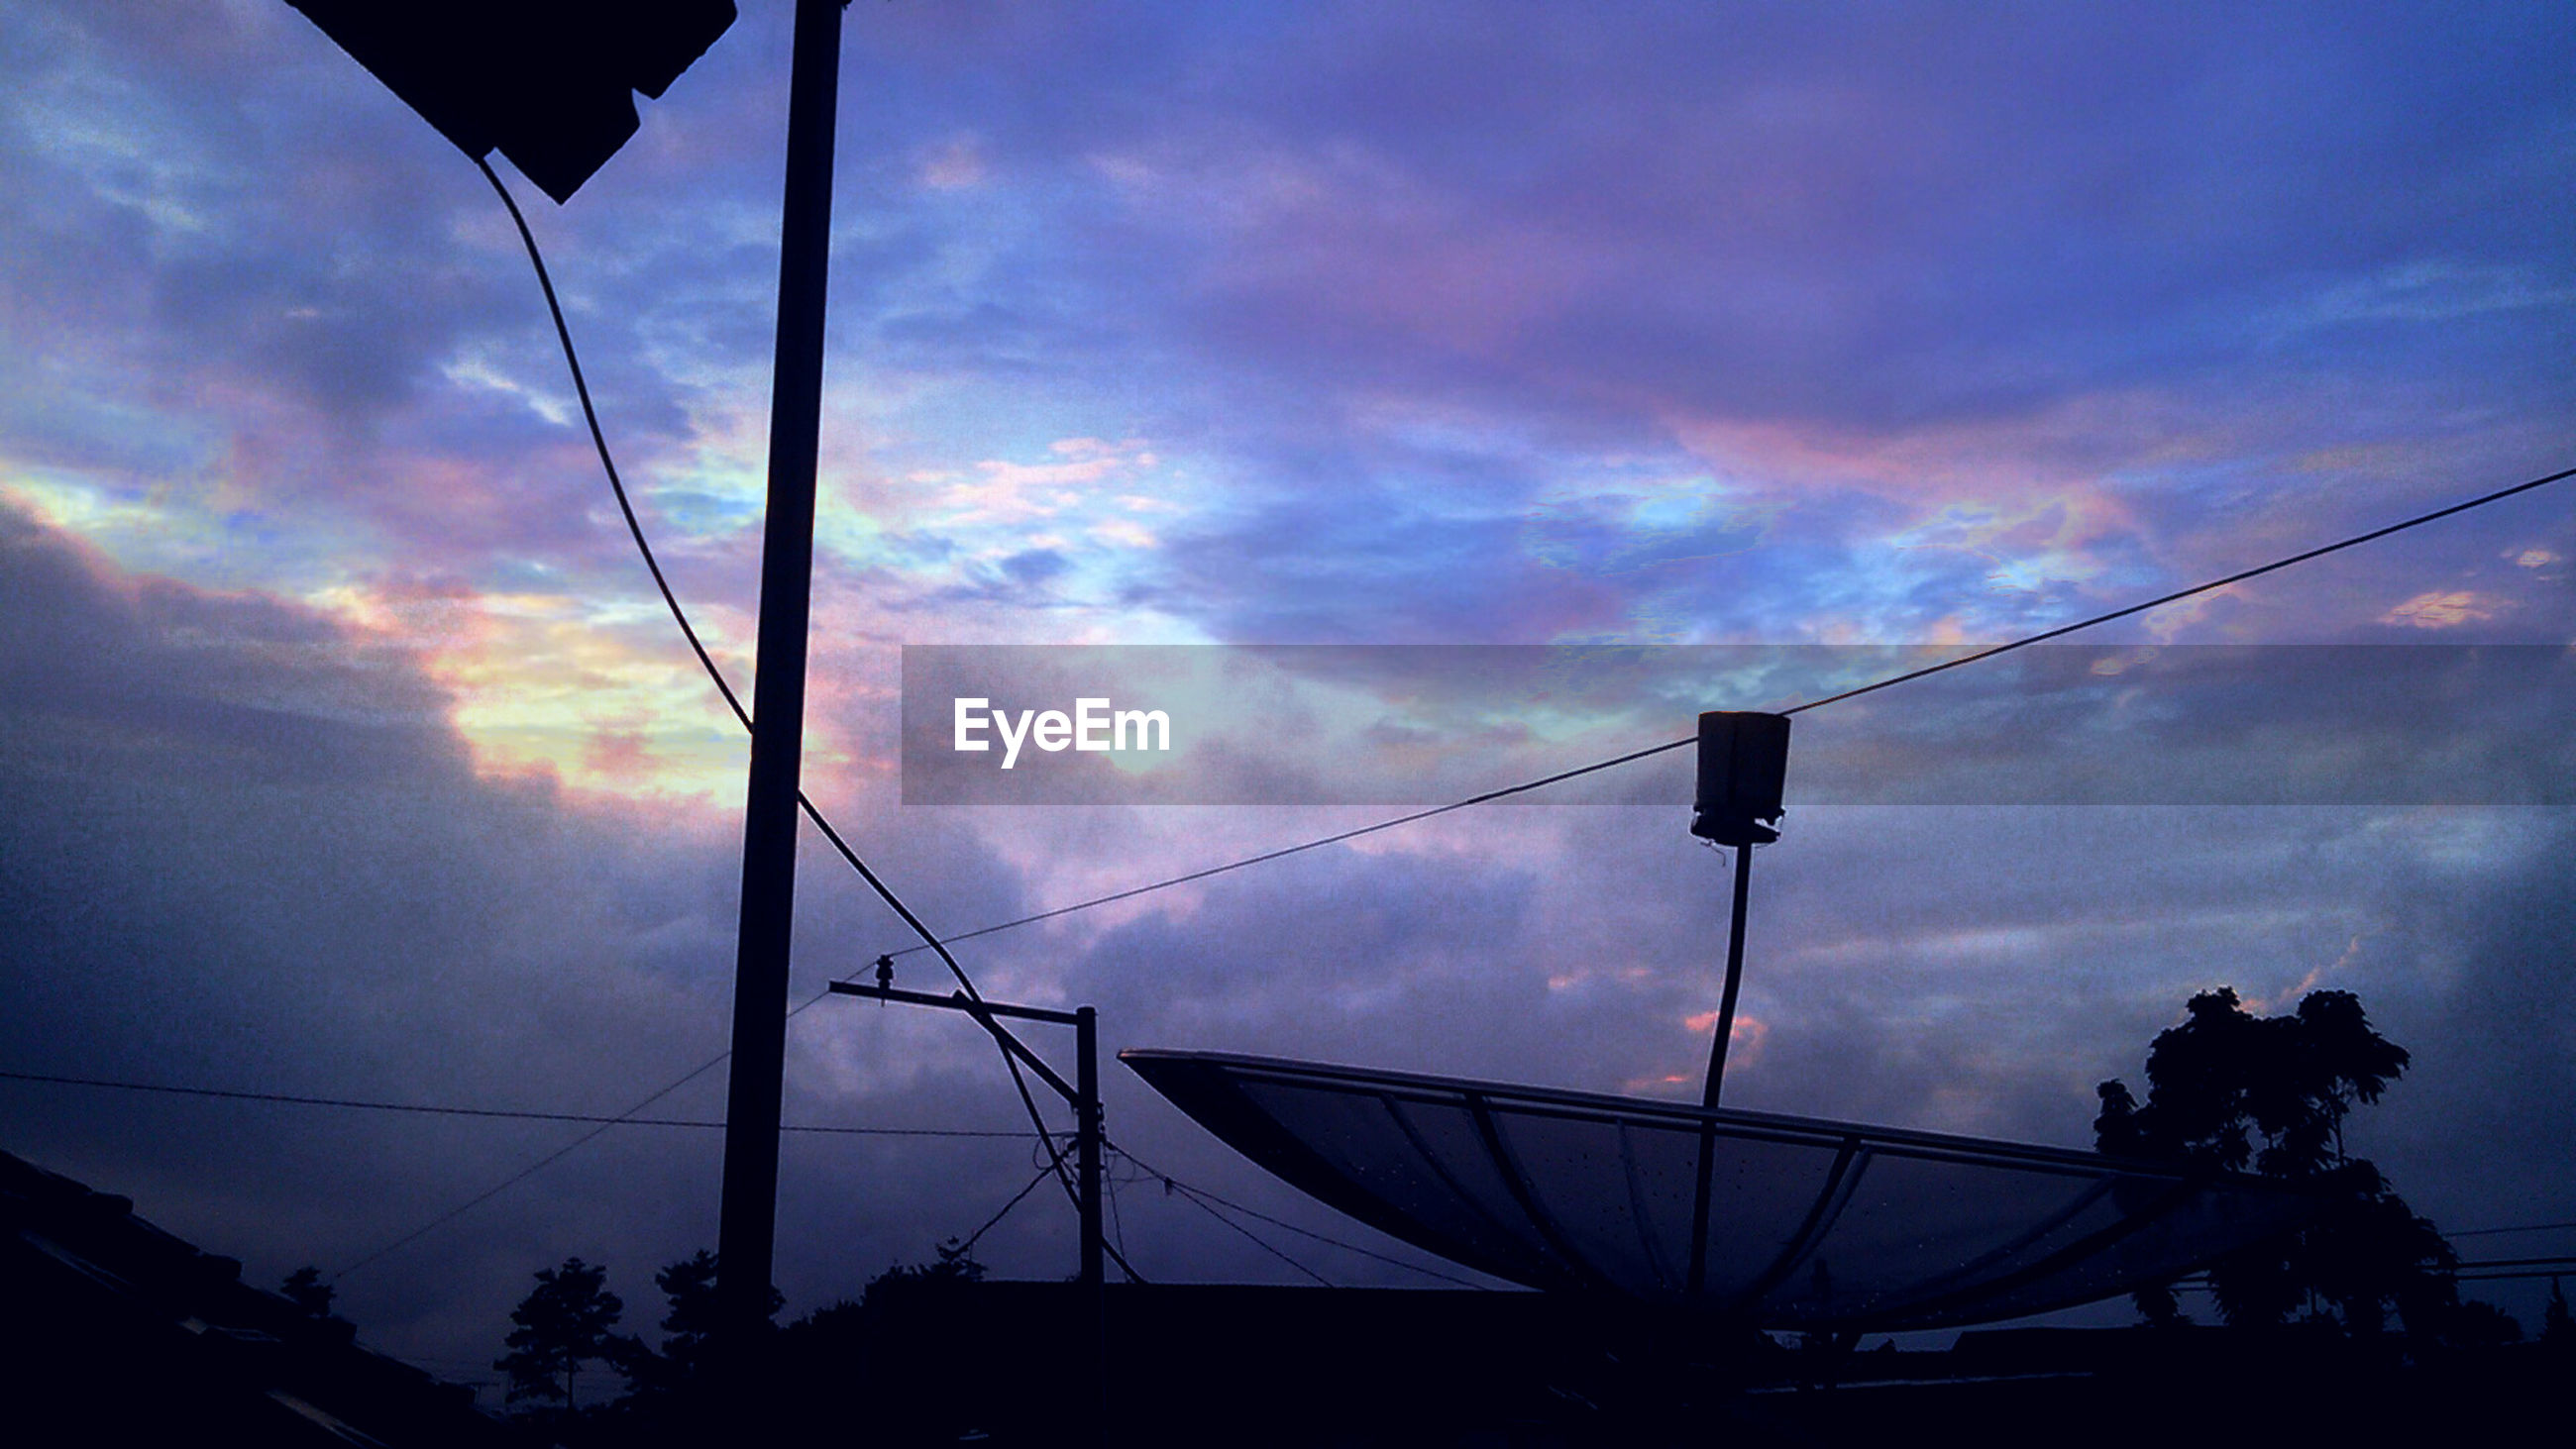 Satellite dish against cloudy sky during sunset